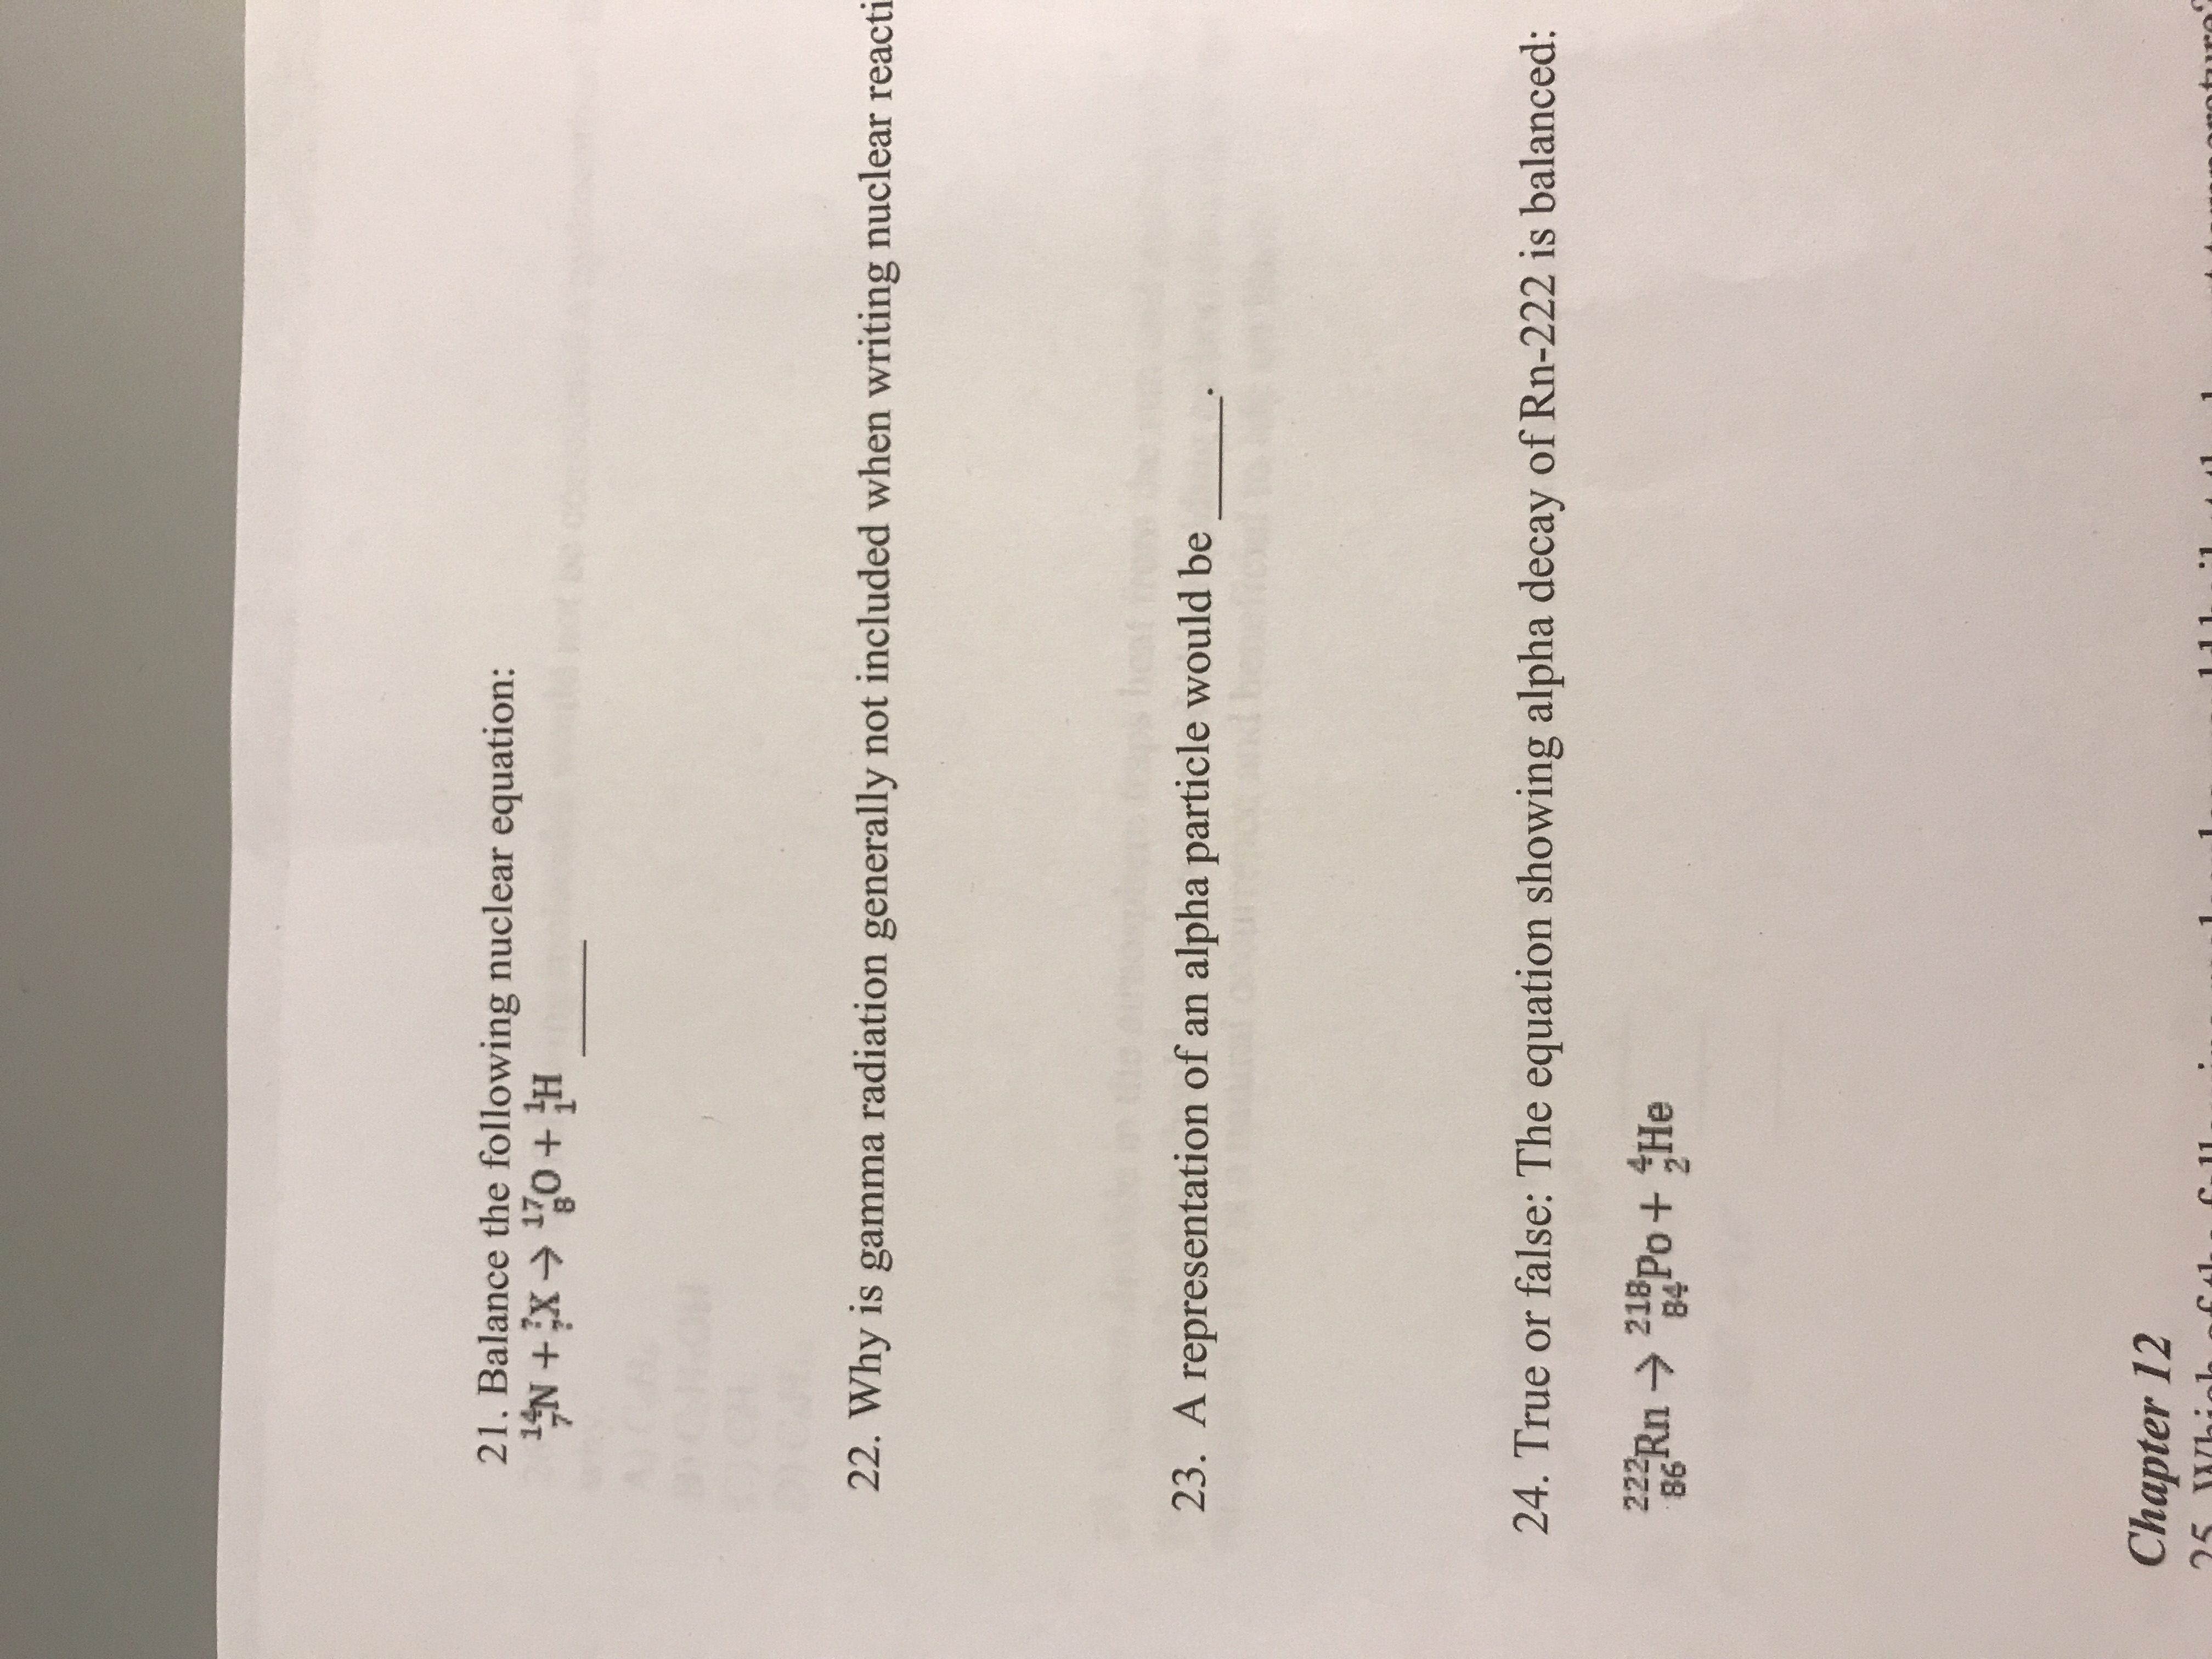 Answered True Or False The Equation Showing